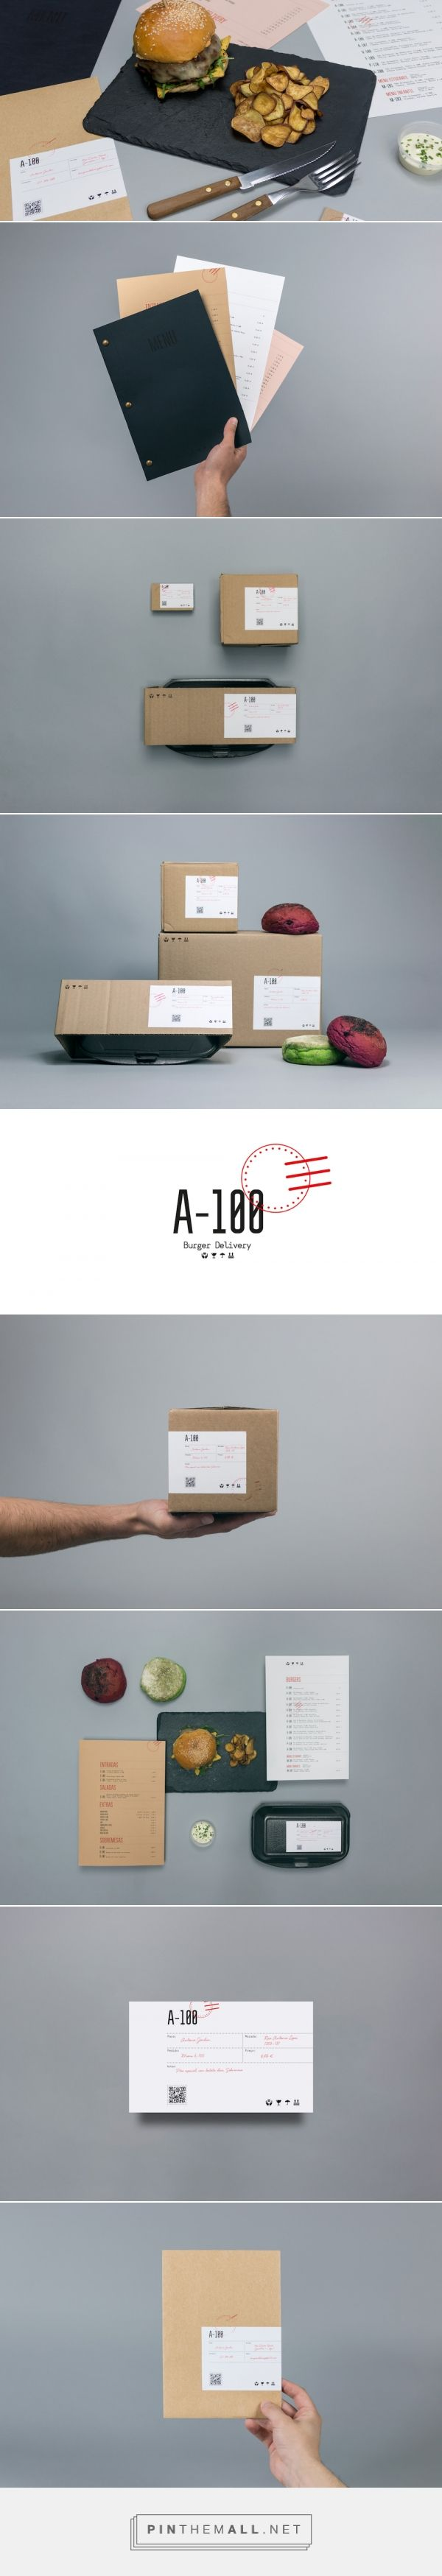 A-100 Burger Delivery — The Dieline - Branding & Packaging - created via https://pinthemall.net